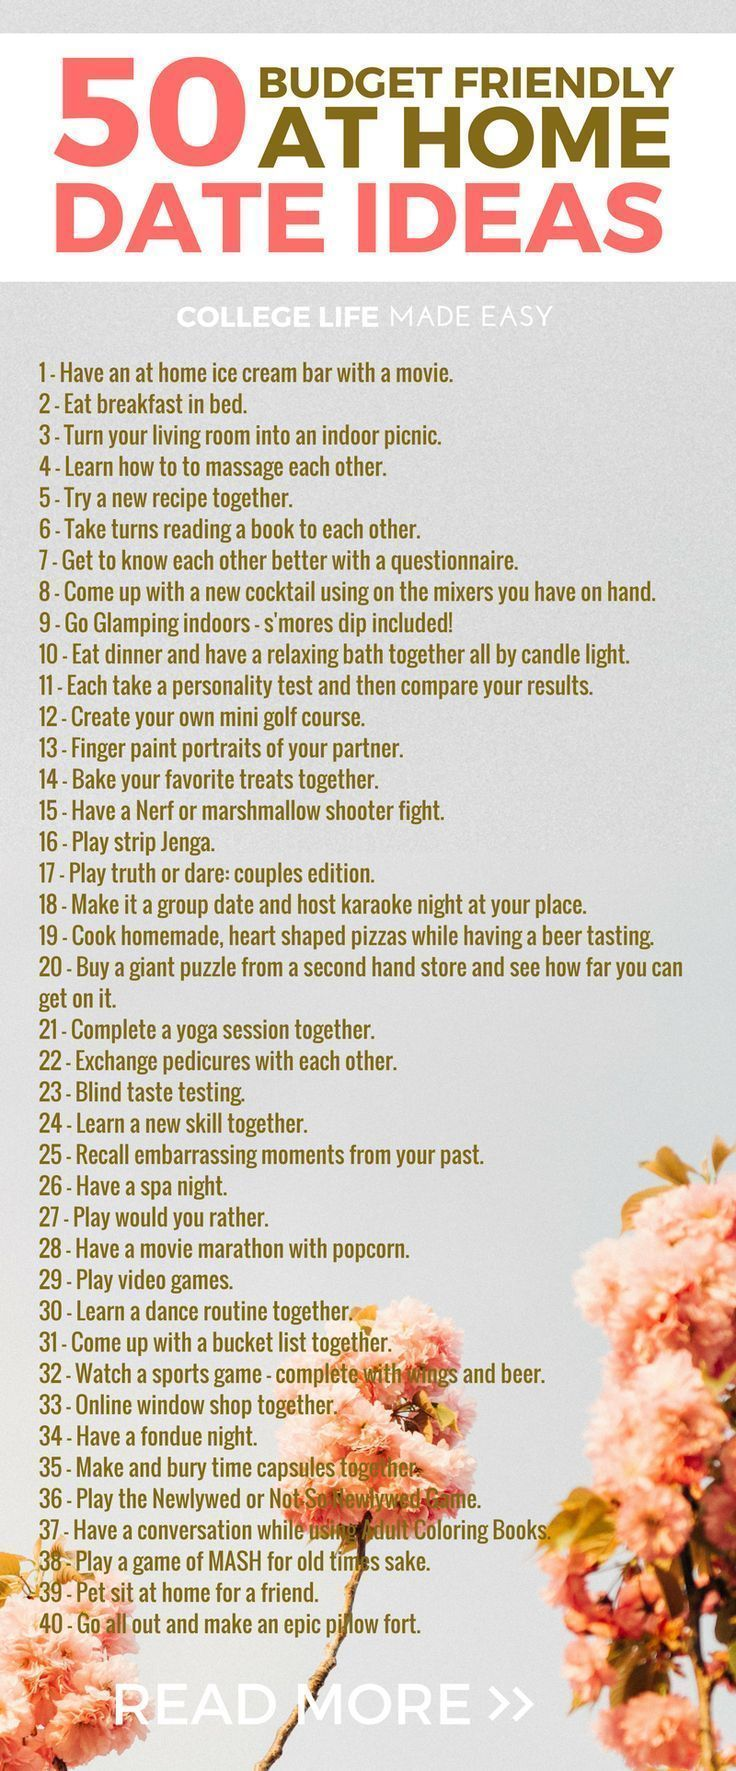 50 Budget Friendly & Creative Stay At Home Date Ideas,  #Budget #creative #Date #Friendly #ho... -  50 Budget Friendly & Creative Stay At Home Date Ideas,  #Budget #creative #Date #Friendly #home   - #Budget #Creative #Date #Friendly #Home #ideas #LoveIsComic #RomanticLoveQuotes #stay #ThingsAboutBoyfriends #WellSaid